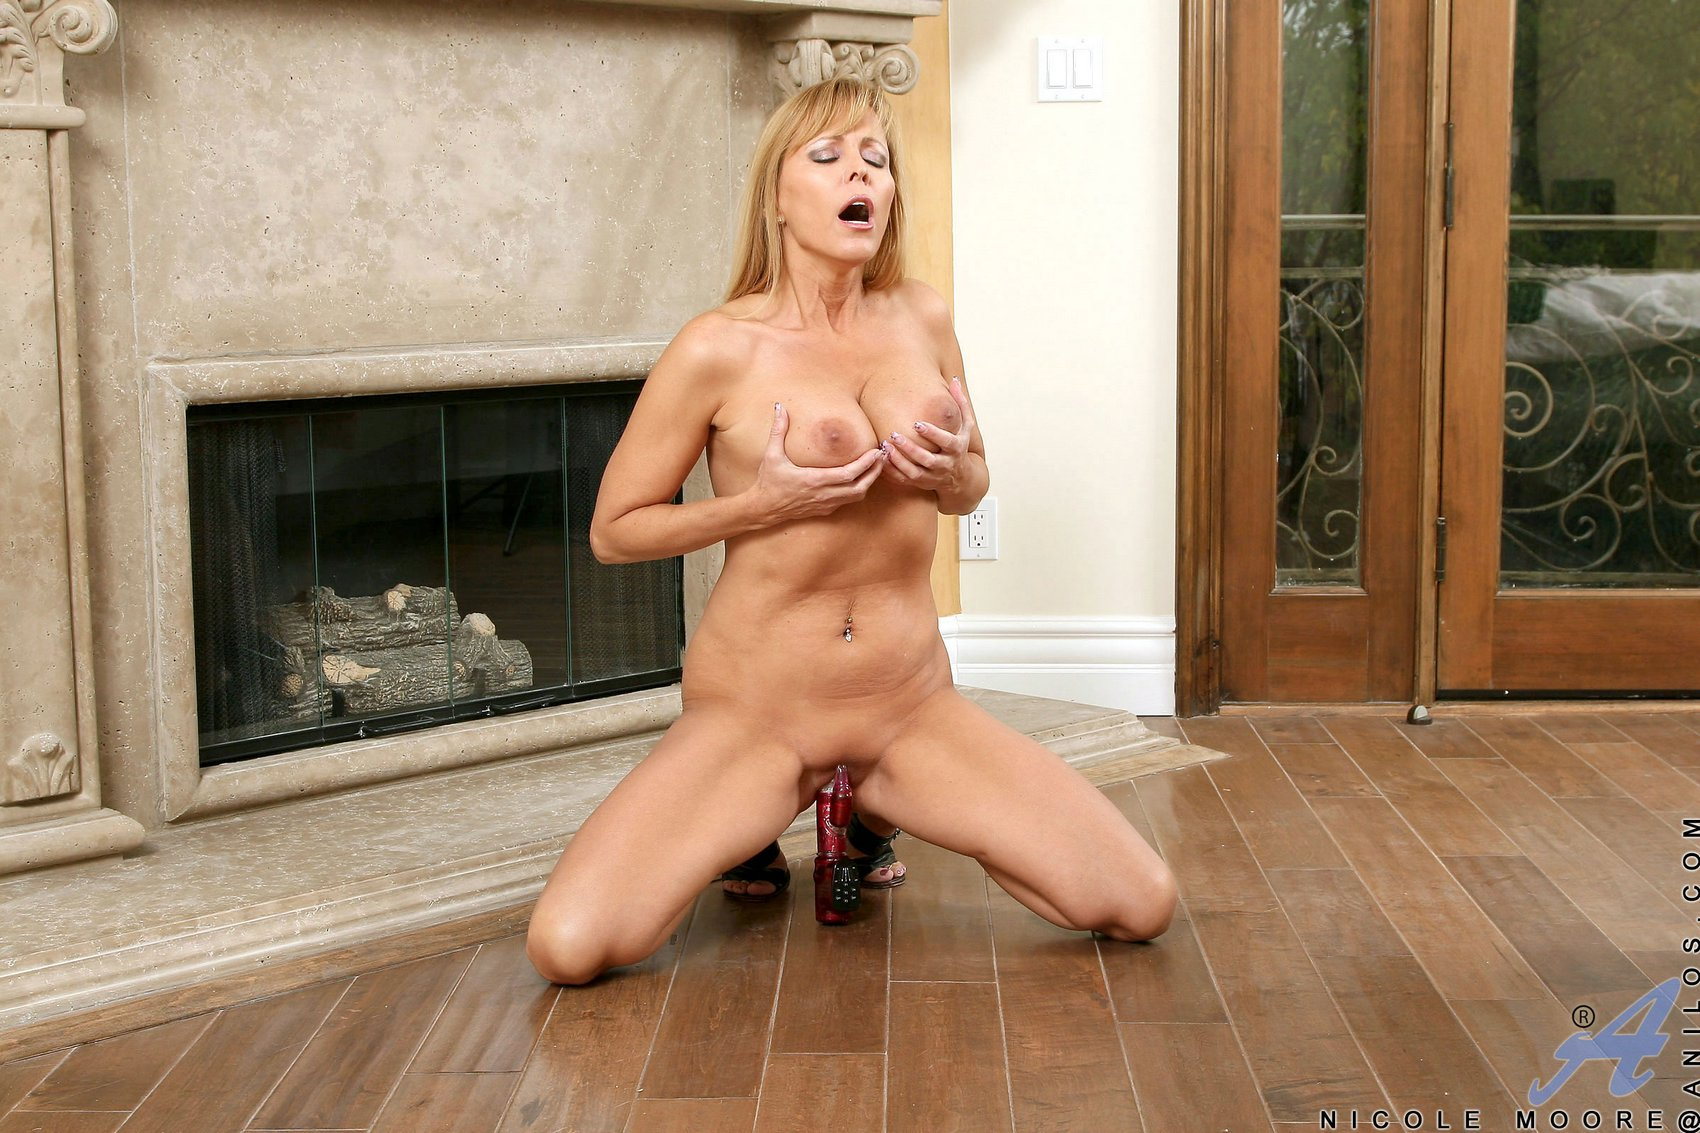 Busty Milf Nicole Moore Playing With Her Favorite Vibrator - My -2289